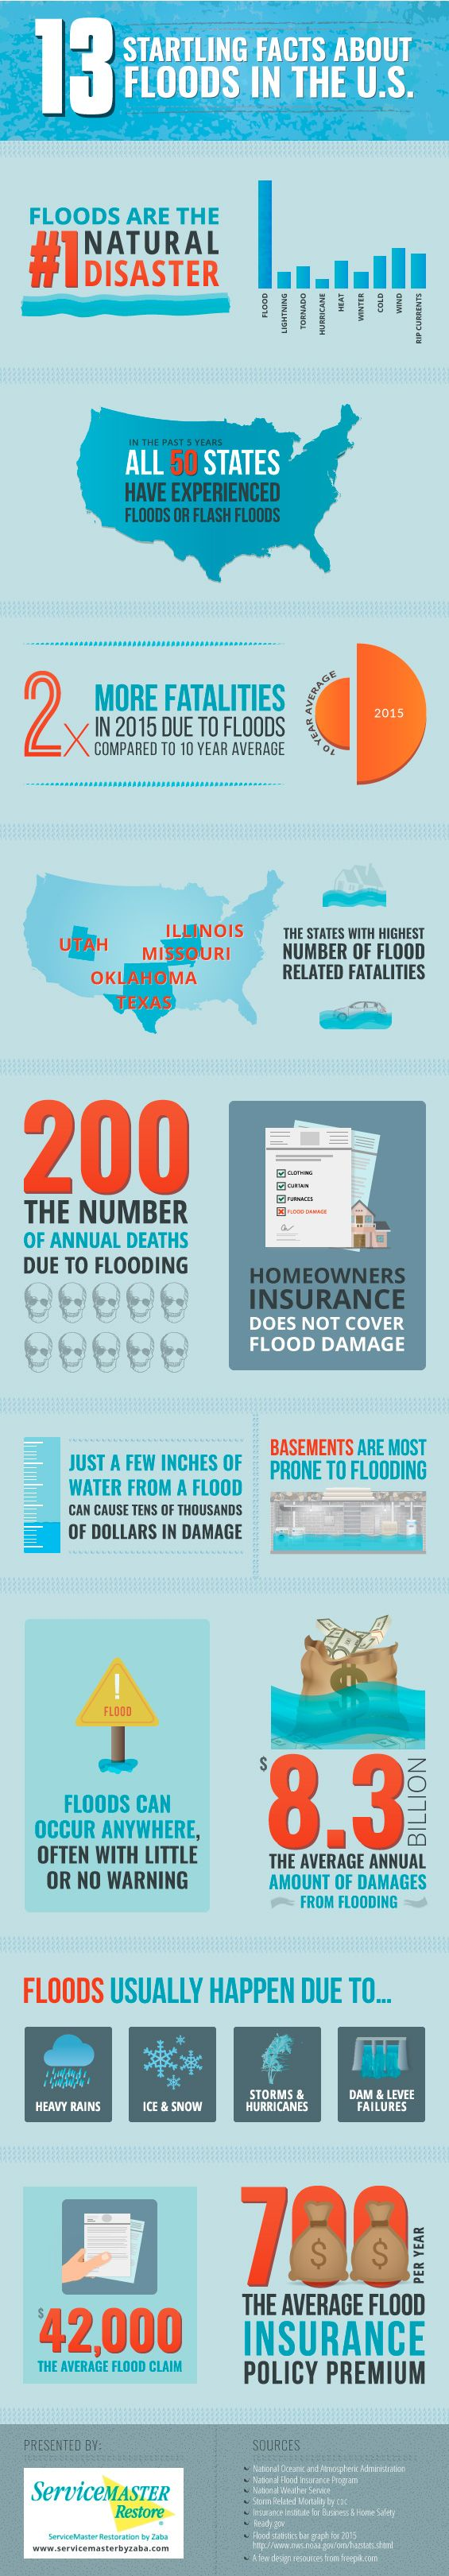 Infographic outlining facts about floods, the #1 natural disaster in the U.S